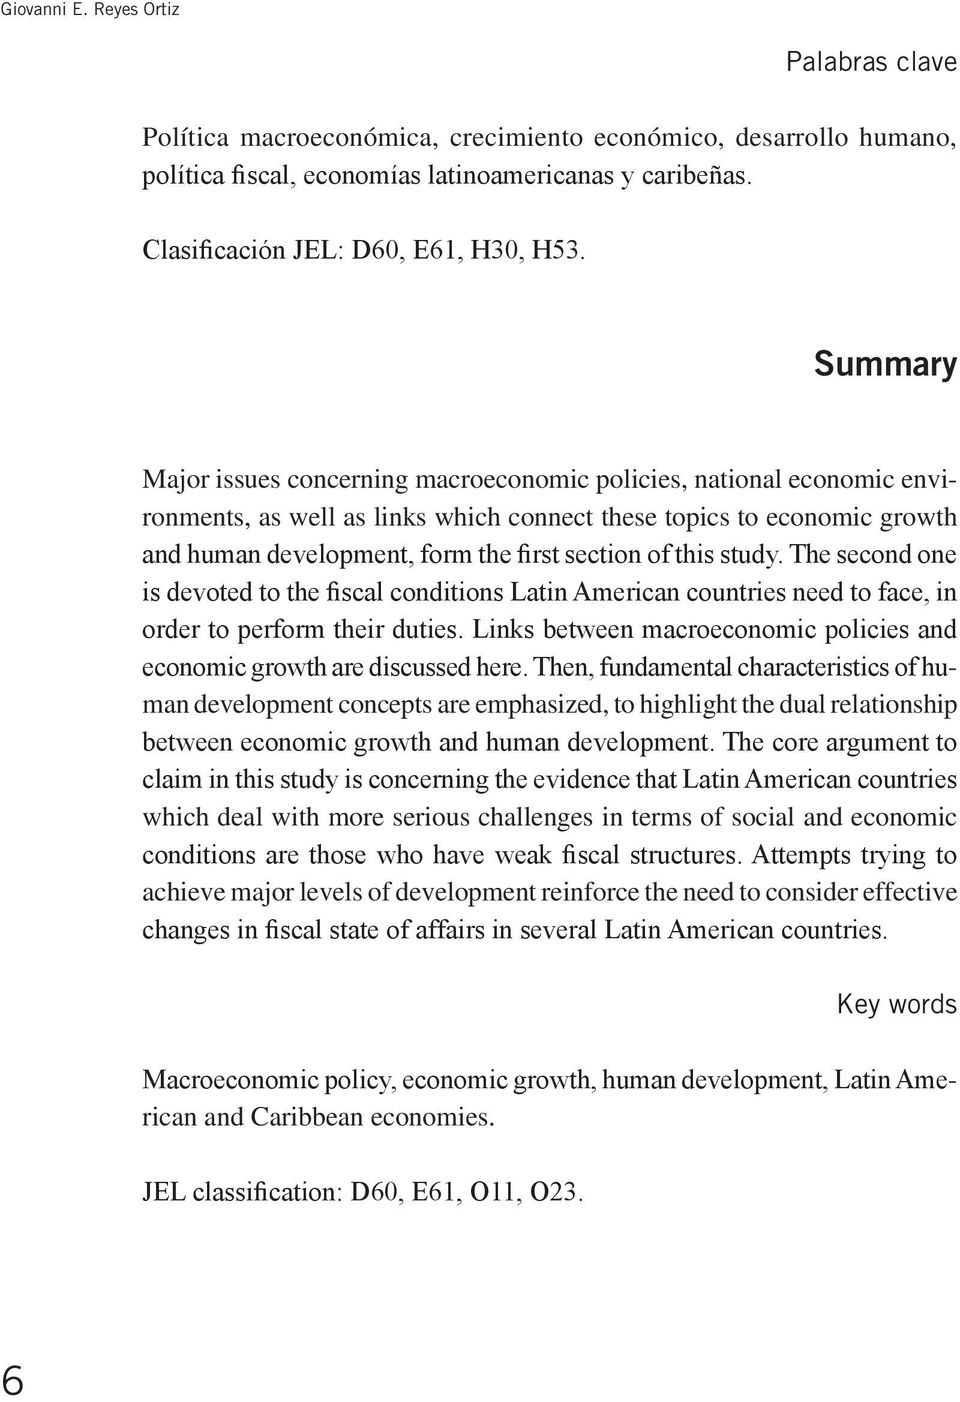 Summary Major issues concerning macroeconomic policies, national economic environments, as well as links which connect these topics to economic growth and human development, form the first section of